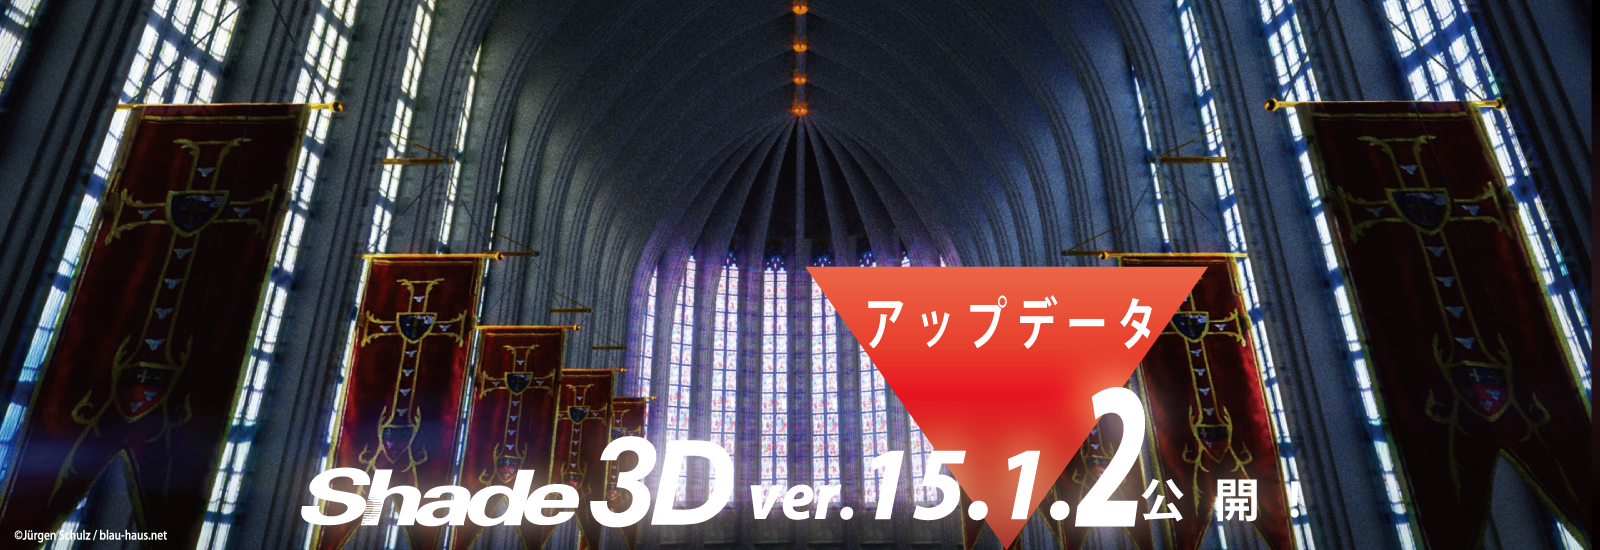 Shade 3D ver.15.1.2 release